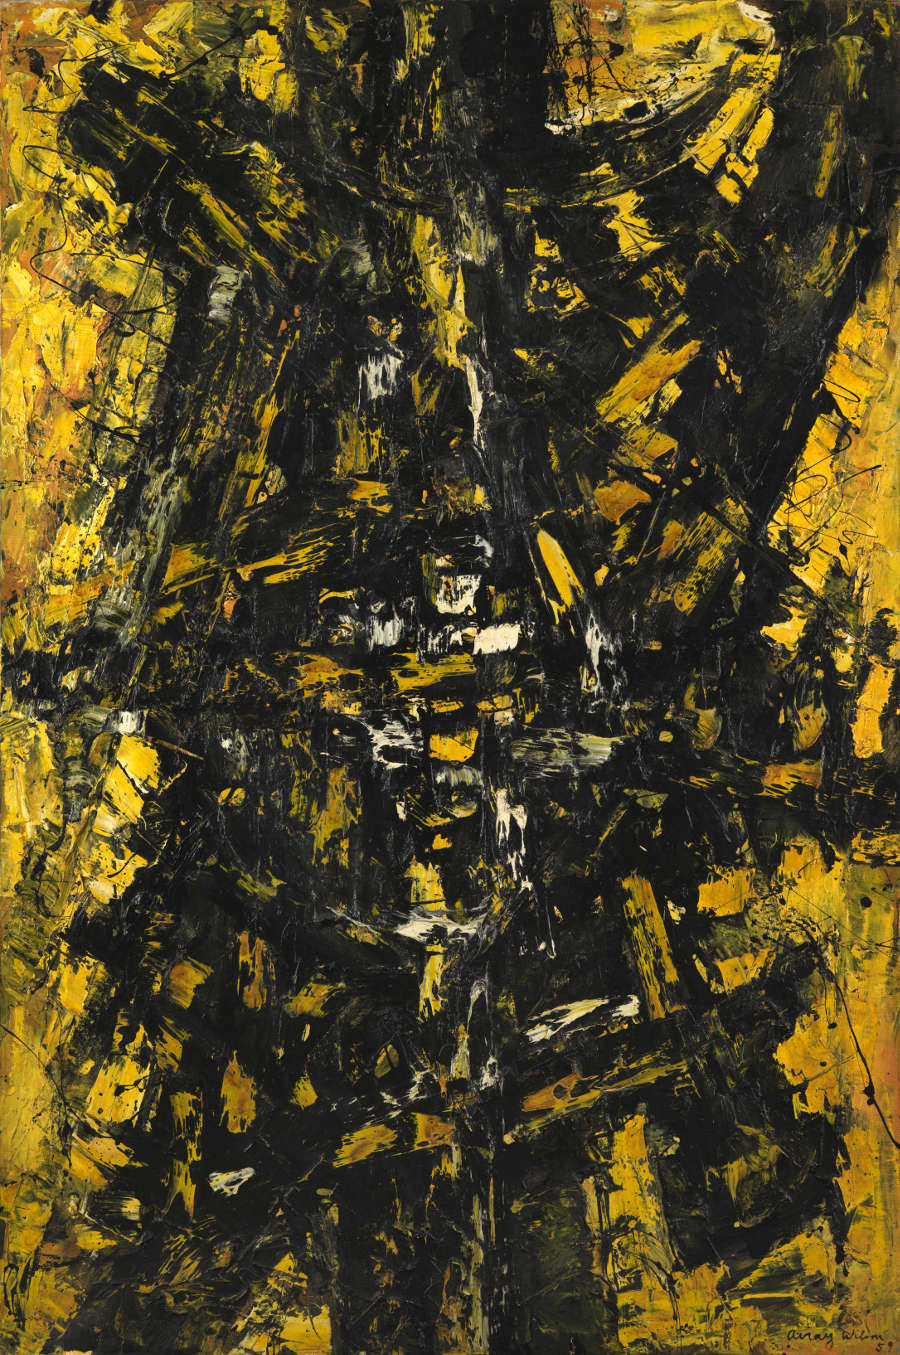 FRANK AVRAY WILSON (1914-2009), FAW787 - CONFIGURATION IN YELLOW AND BLACK,1959. Oil on canvas 182 x 122 cm. Signed and dated lower right